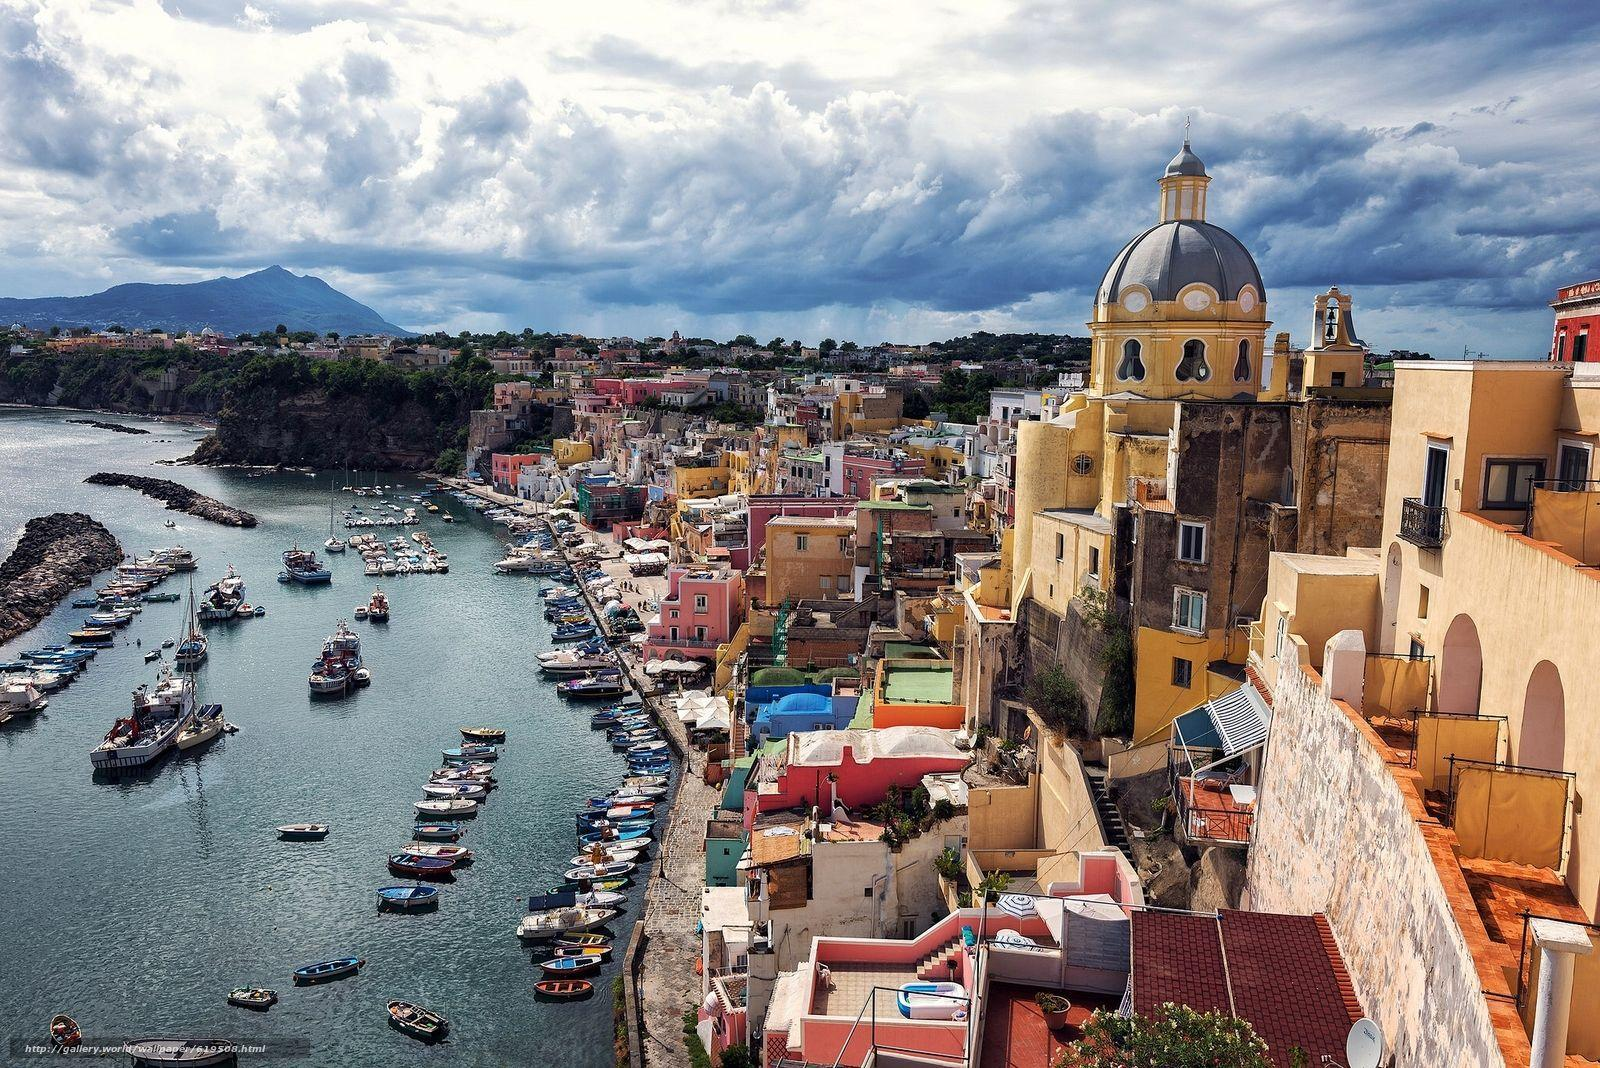 Download wallpapers Corricella, Procida Island, Italy, Gulf of